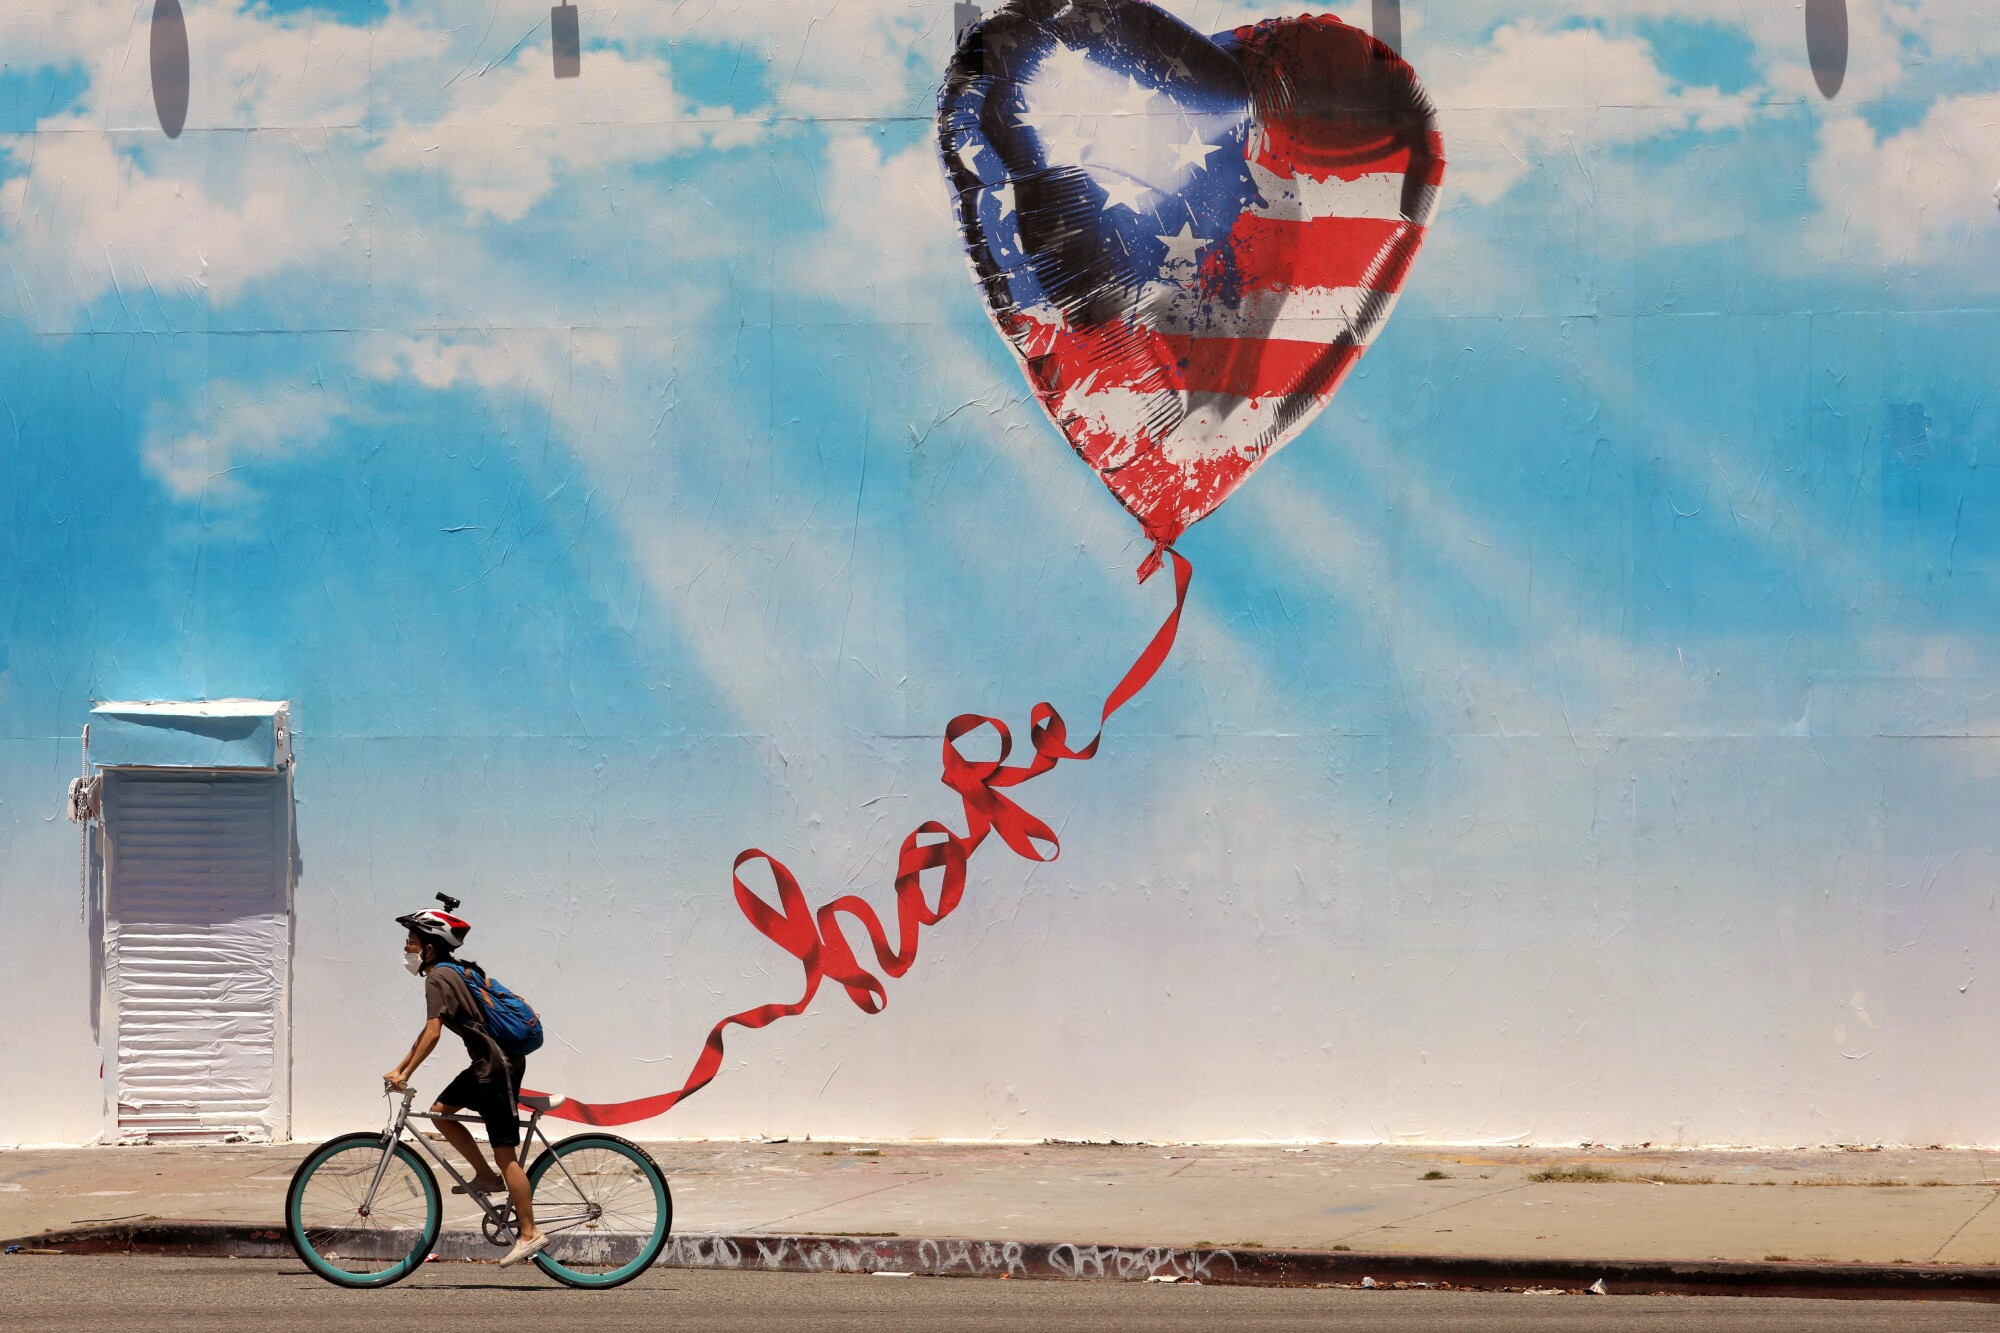 A bicyclist rides past a mural in Los Angeles.